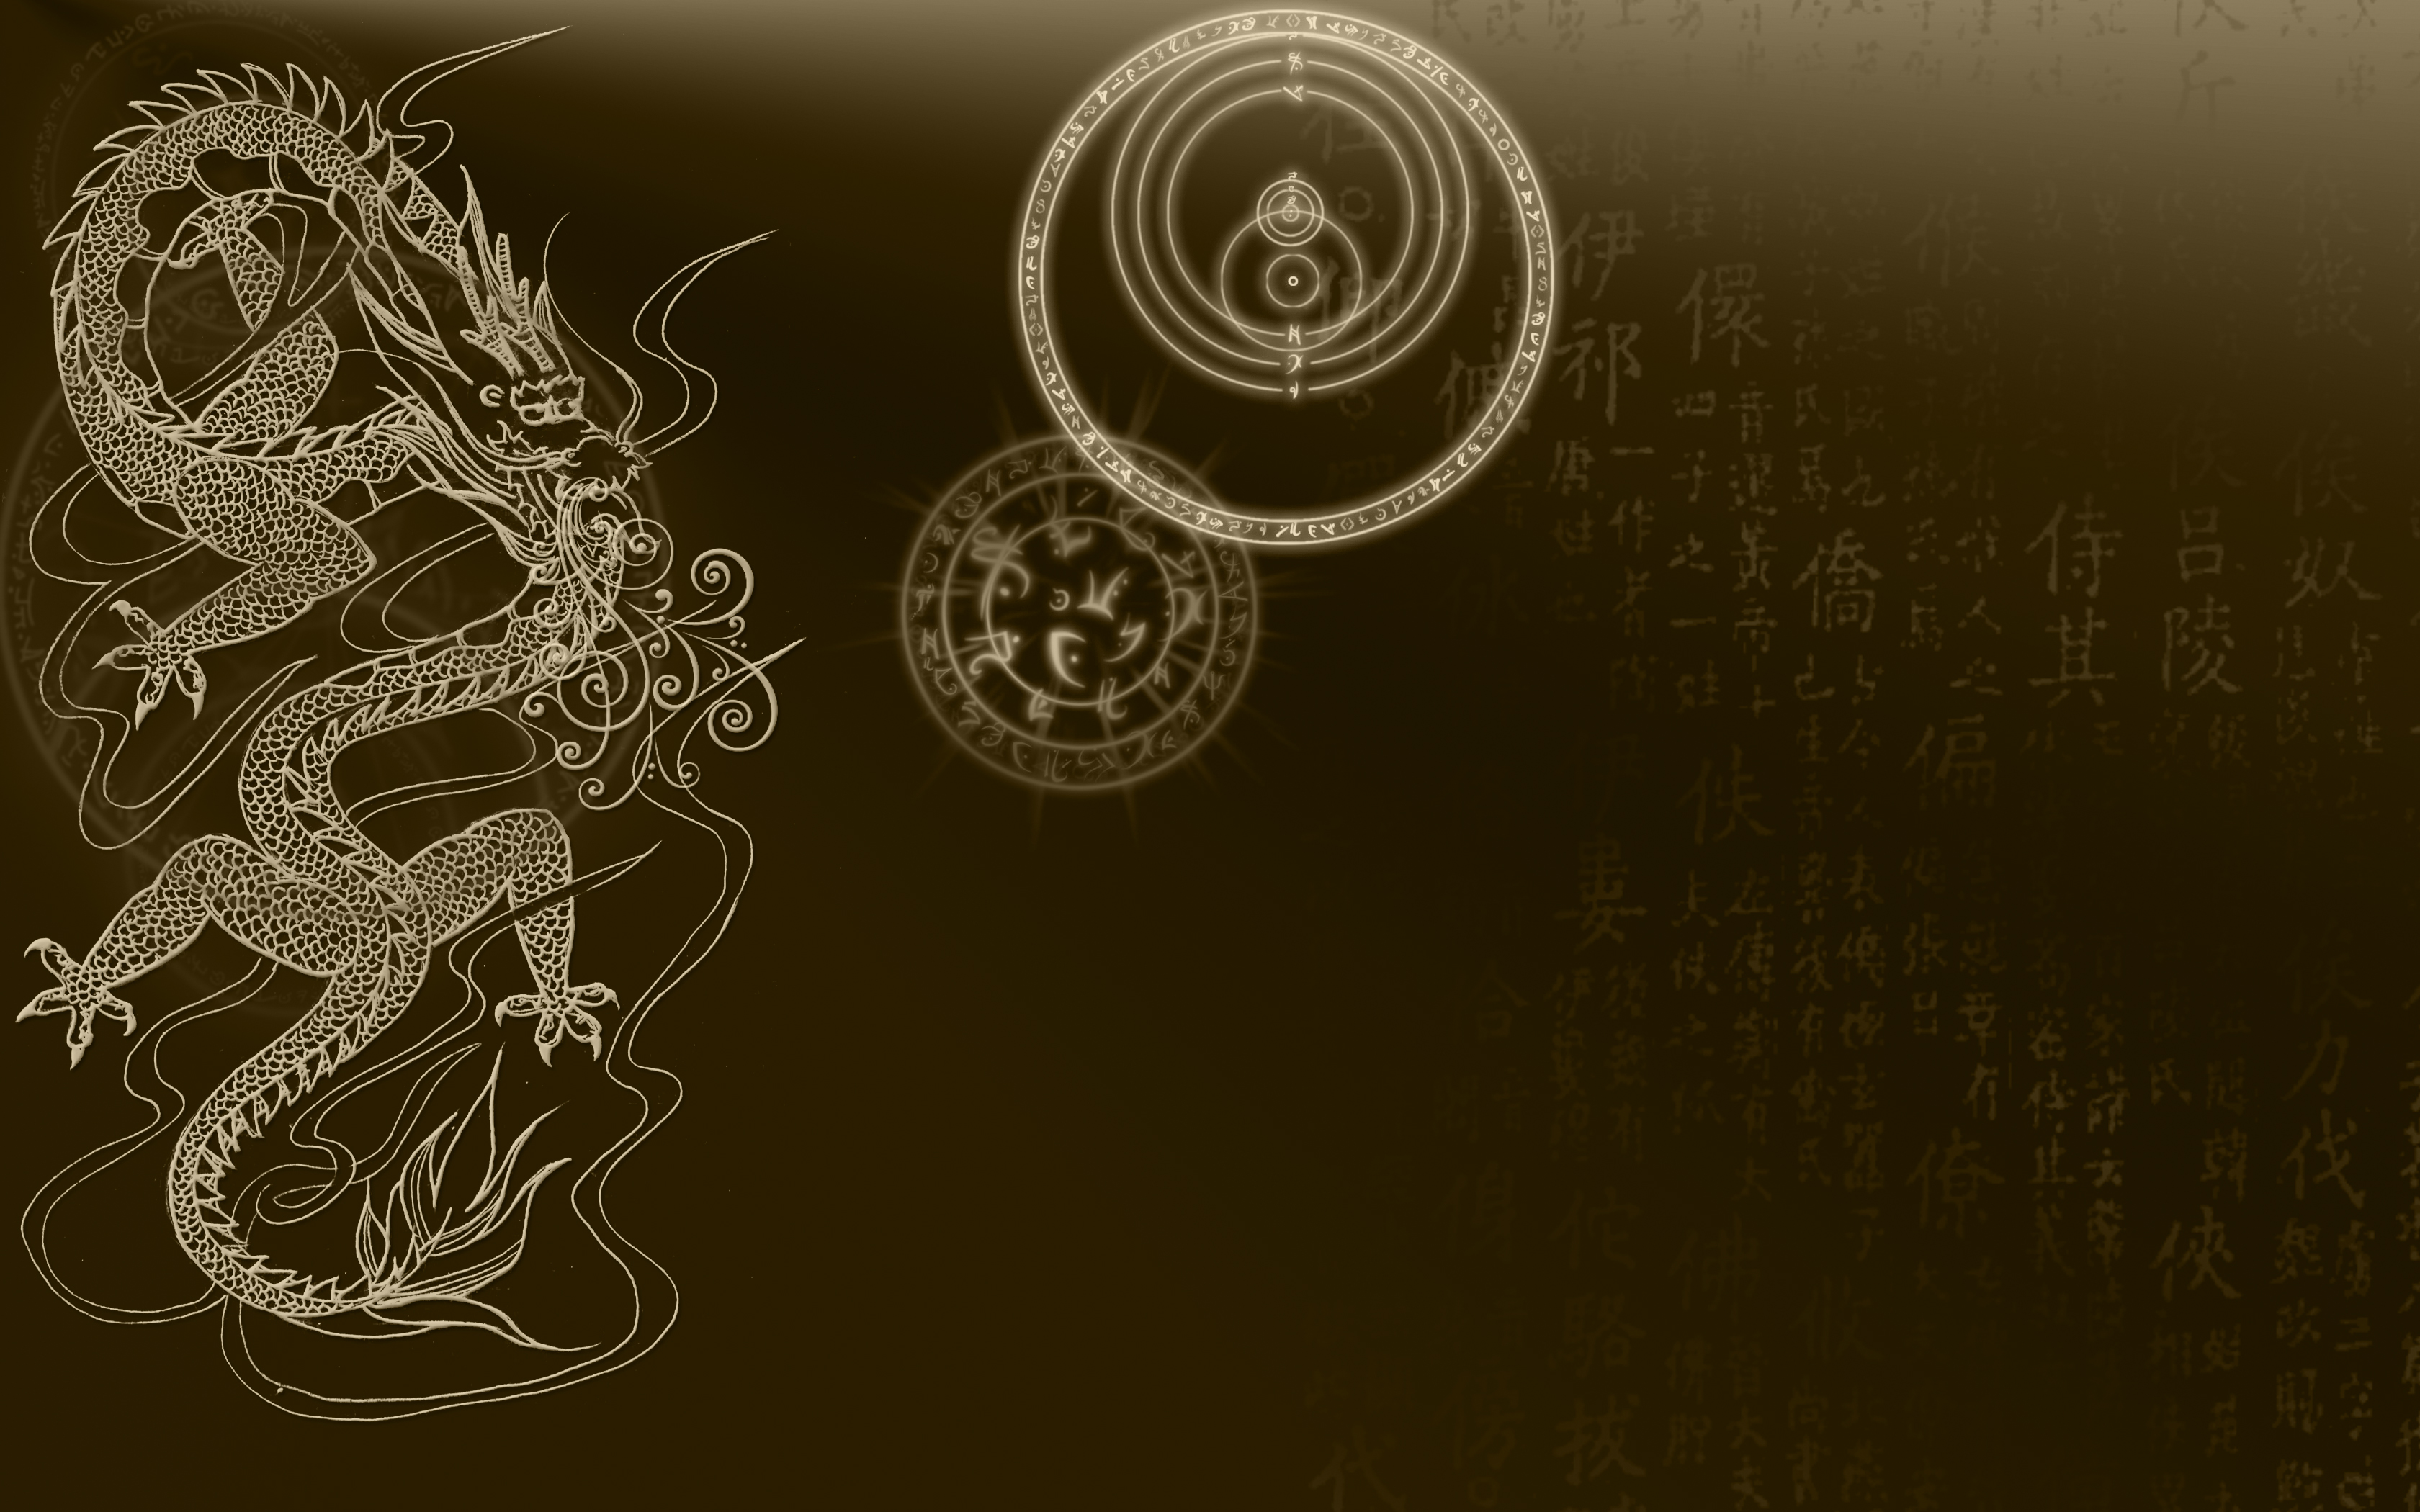 Hd wallpaper dragon - Hd Wallpaper Background Id 429116 3360x2100 Artistic Chinese Dragon